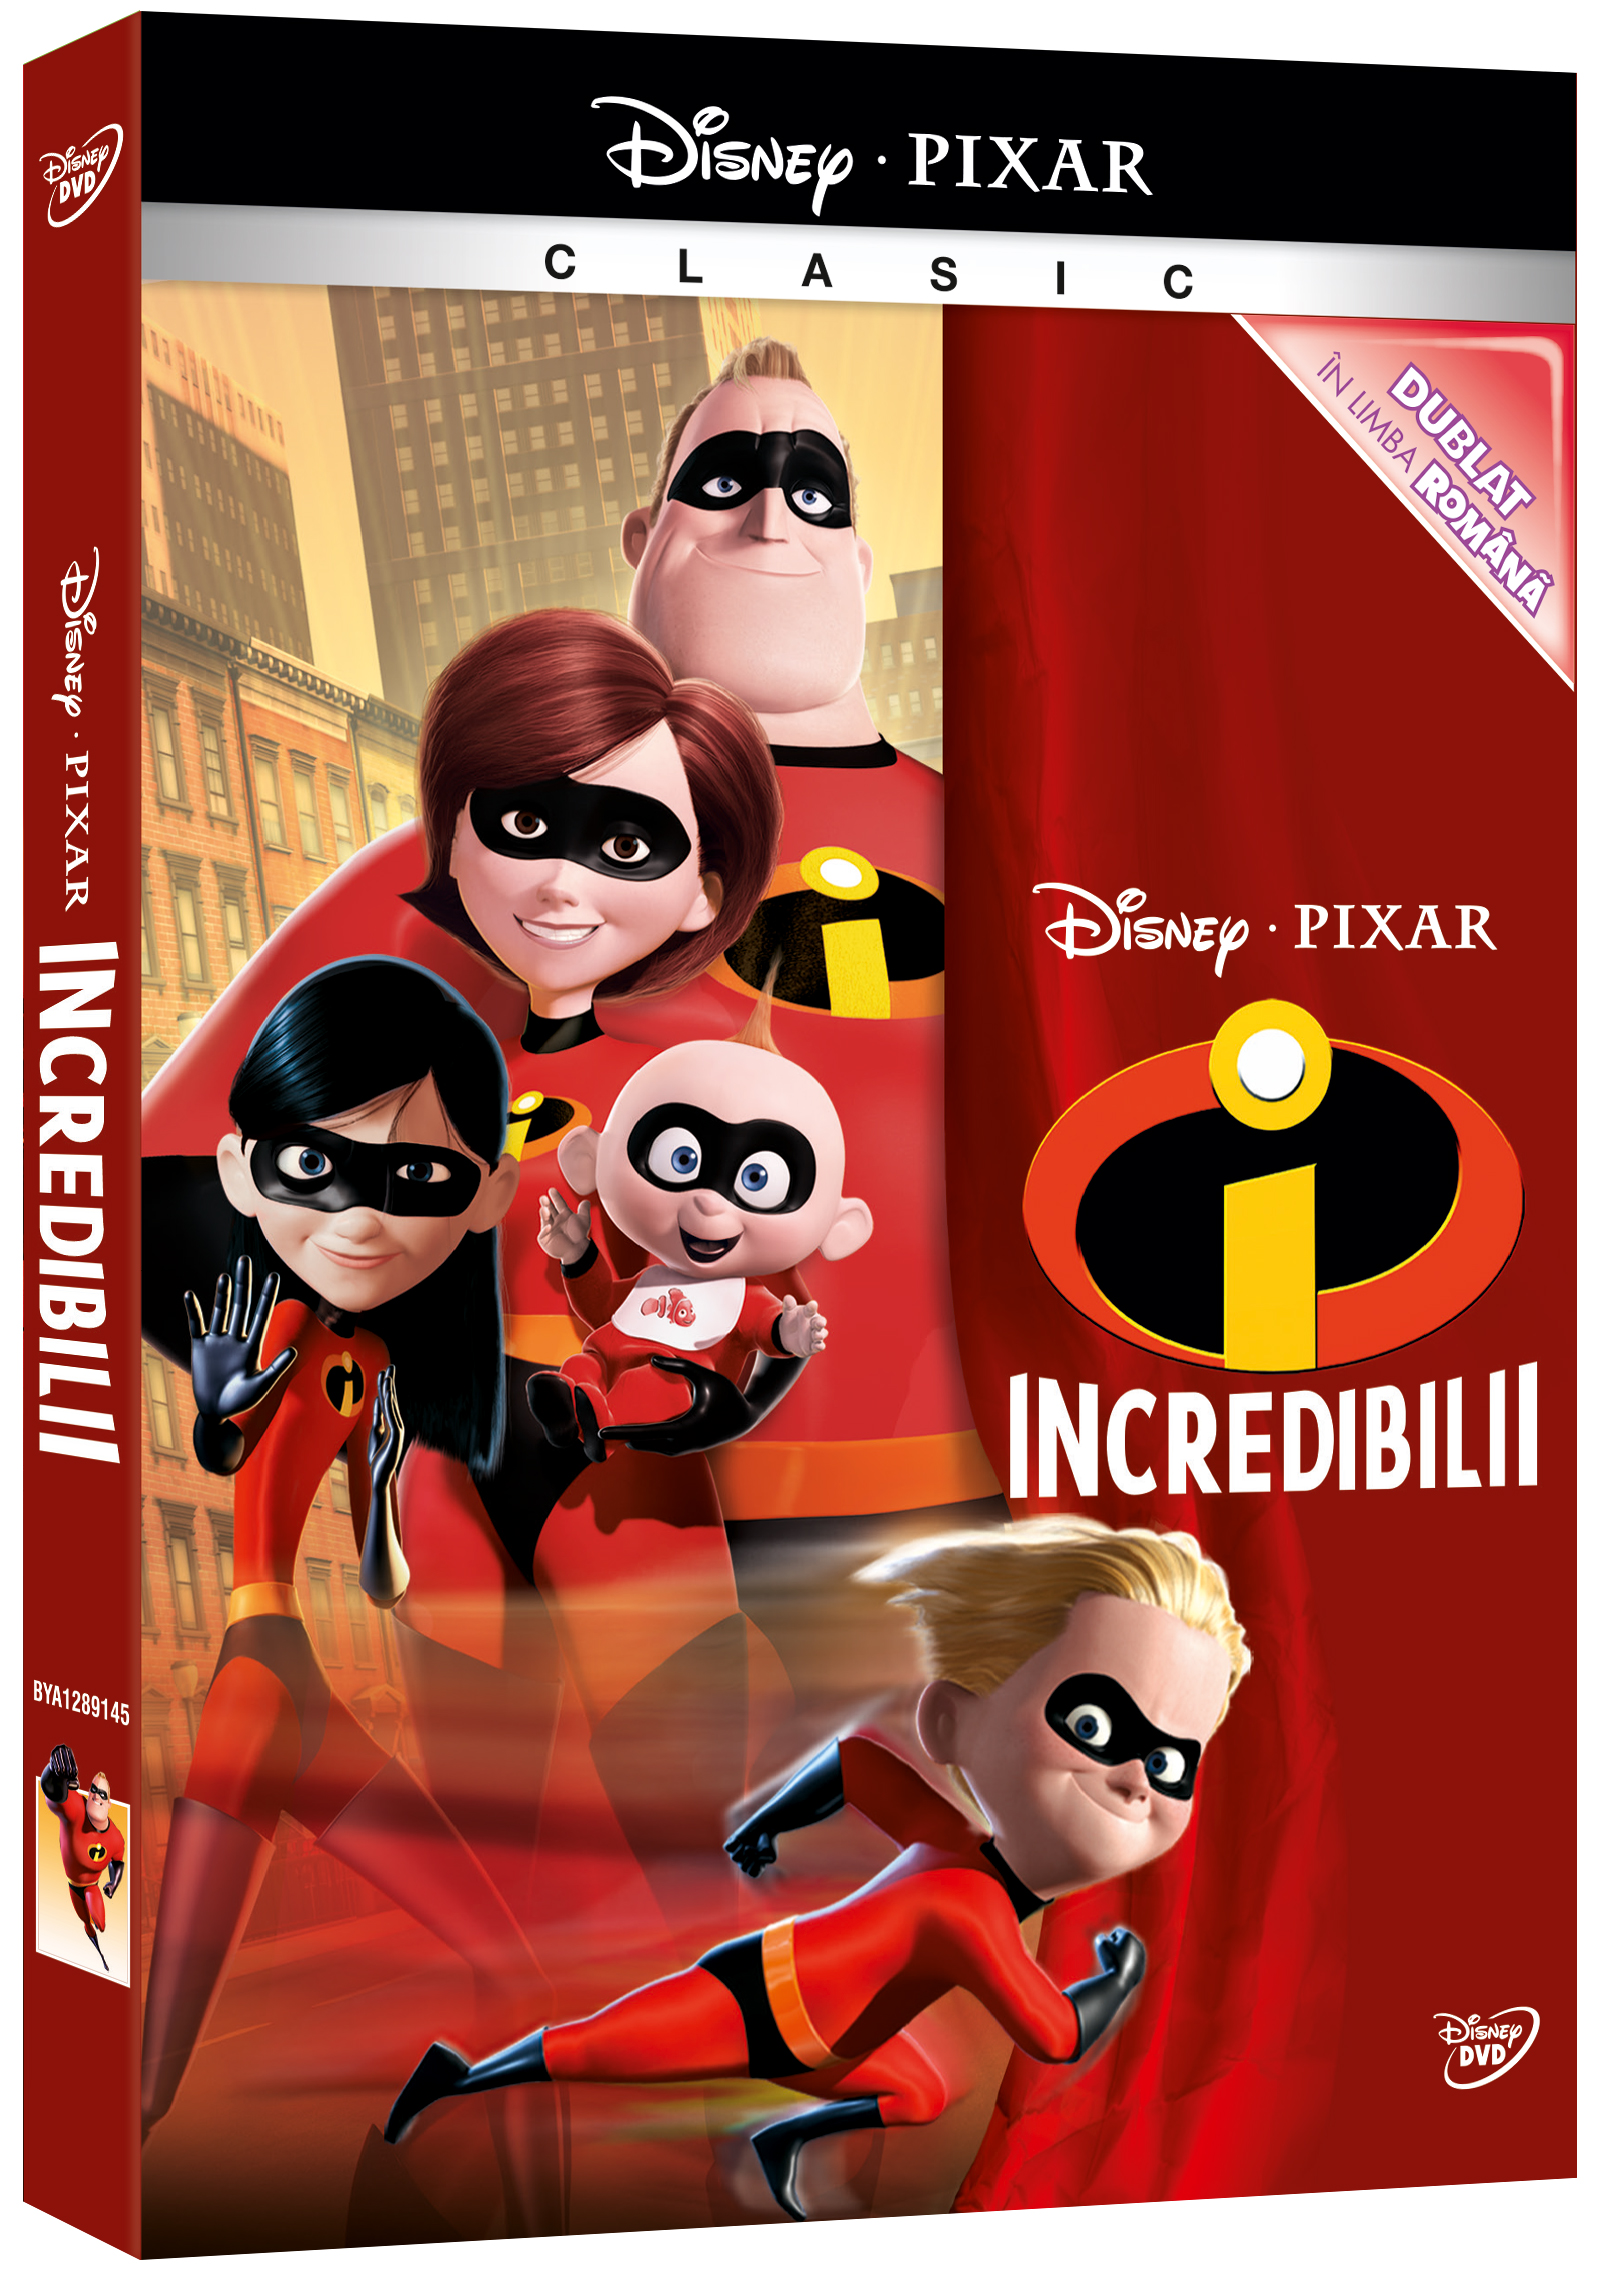 Incredibilii / The Incredibles thumbnail